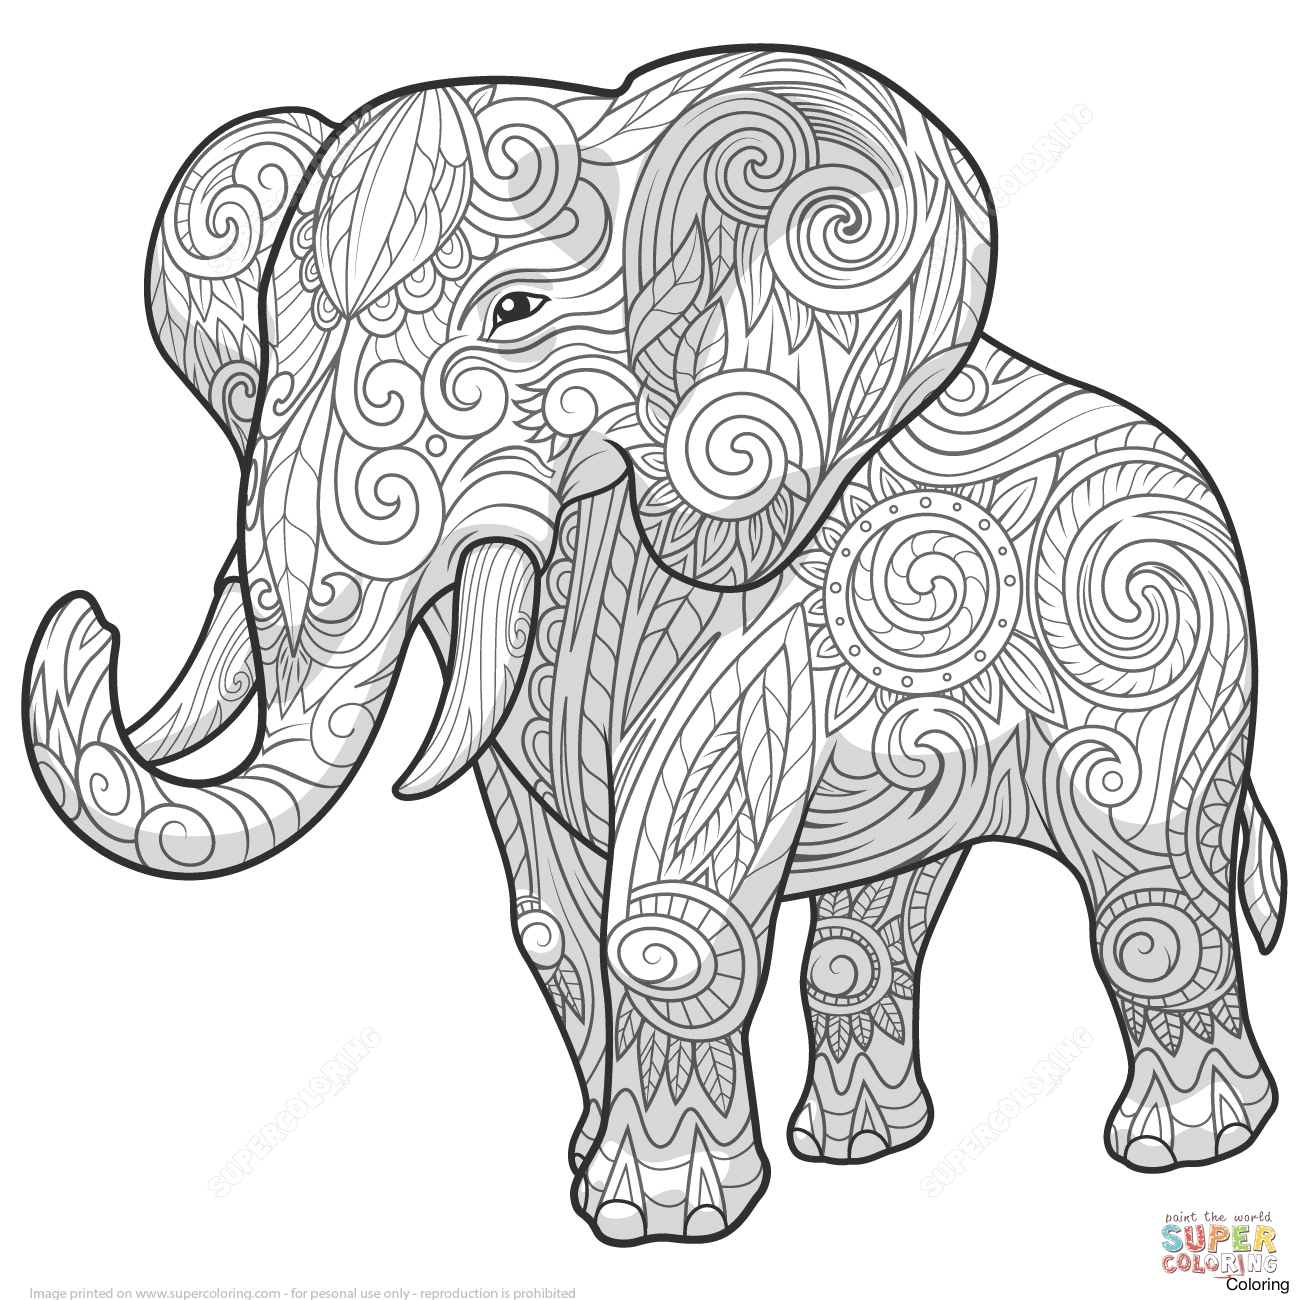 elephant coloring elephant coloring pages for adults best coloring pages elephant coloring